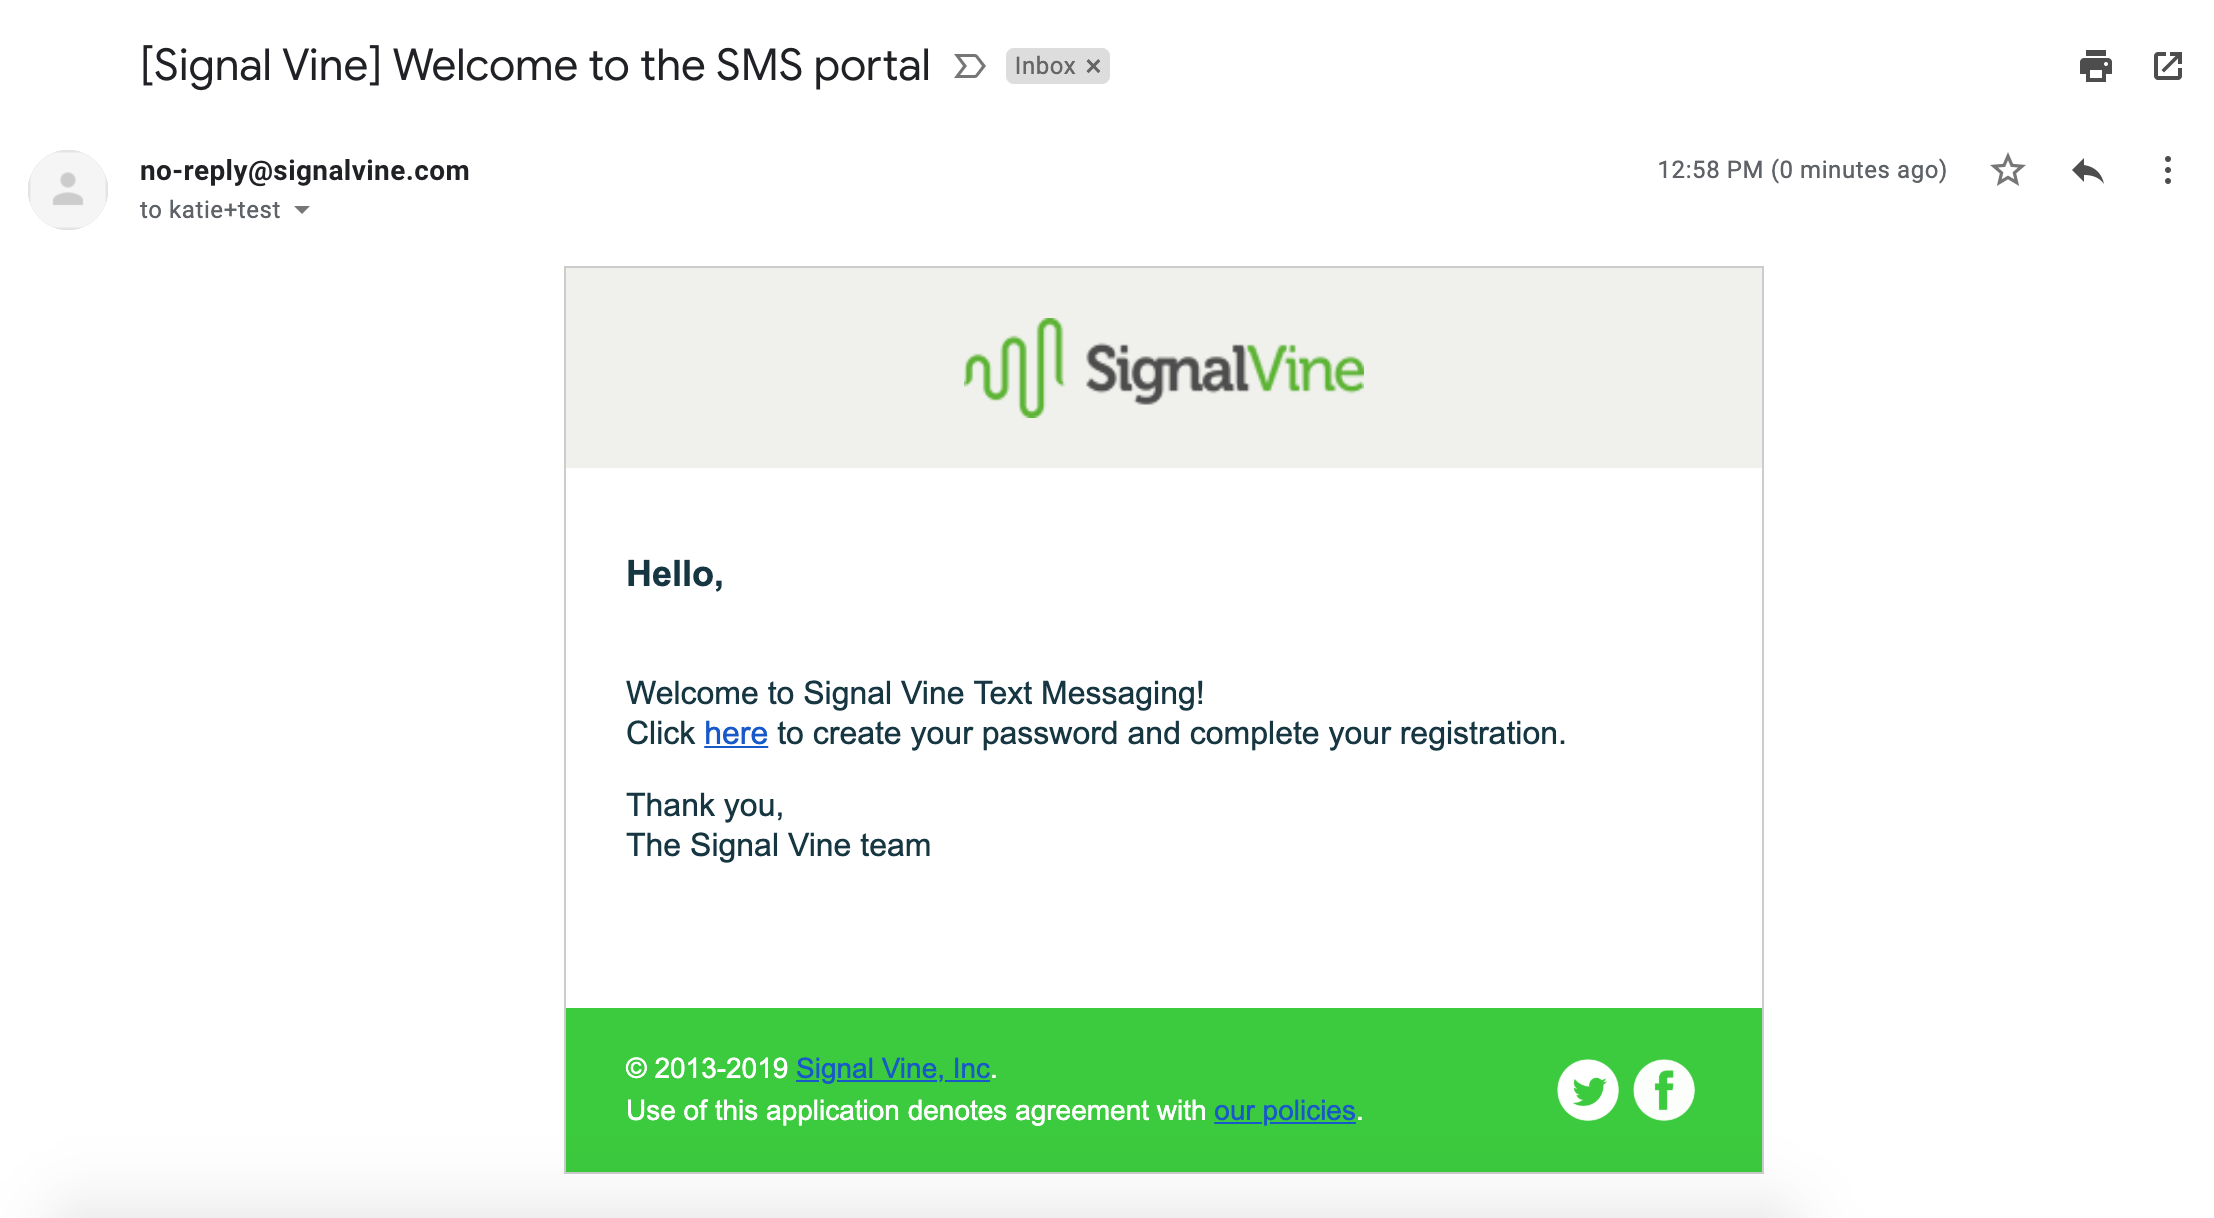 Image of Signal Vine welcome email